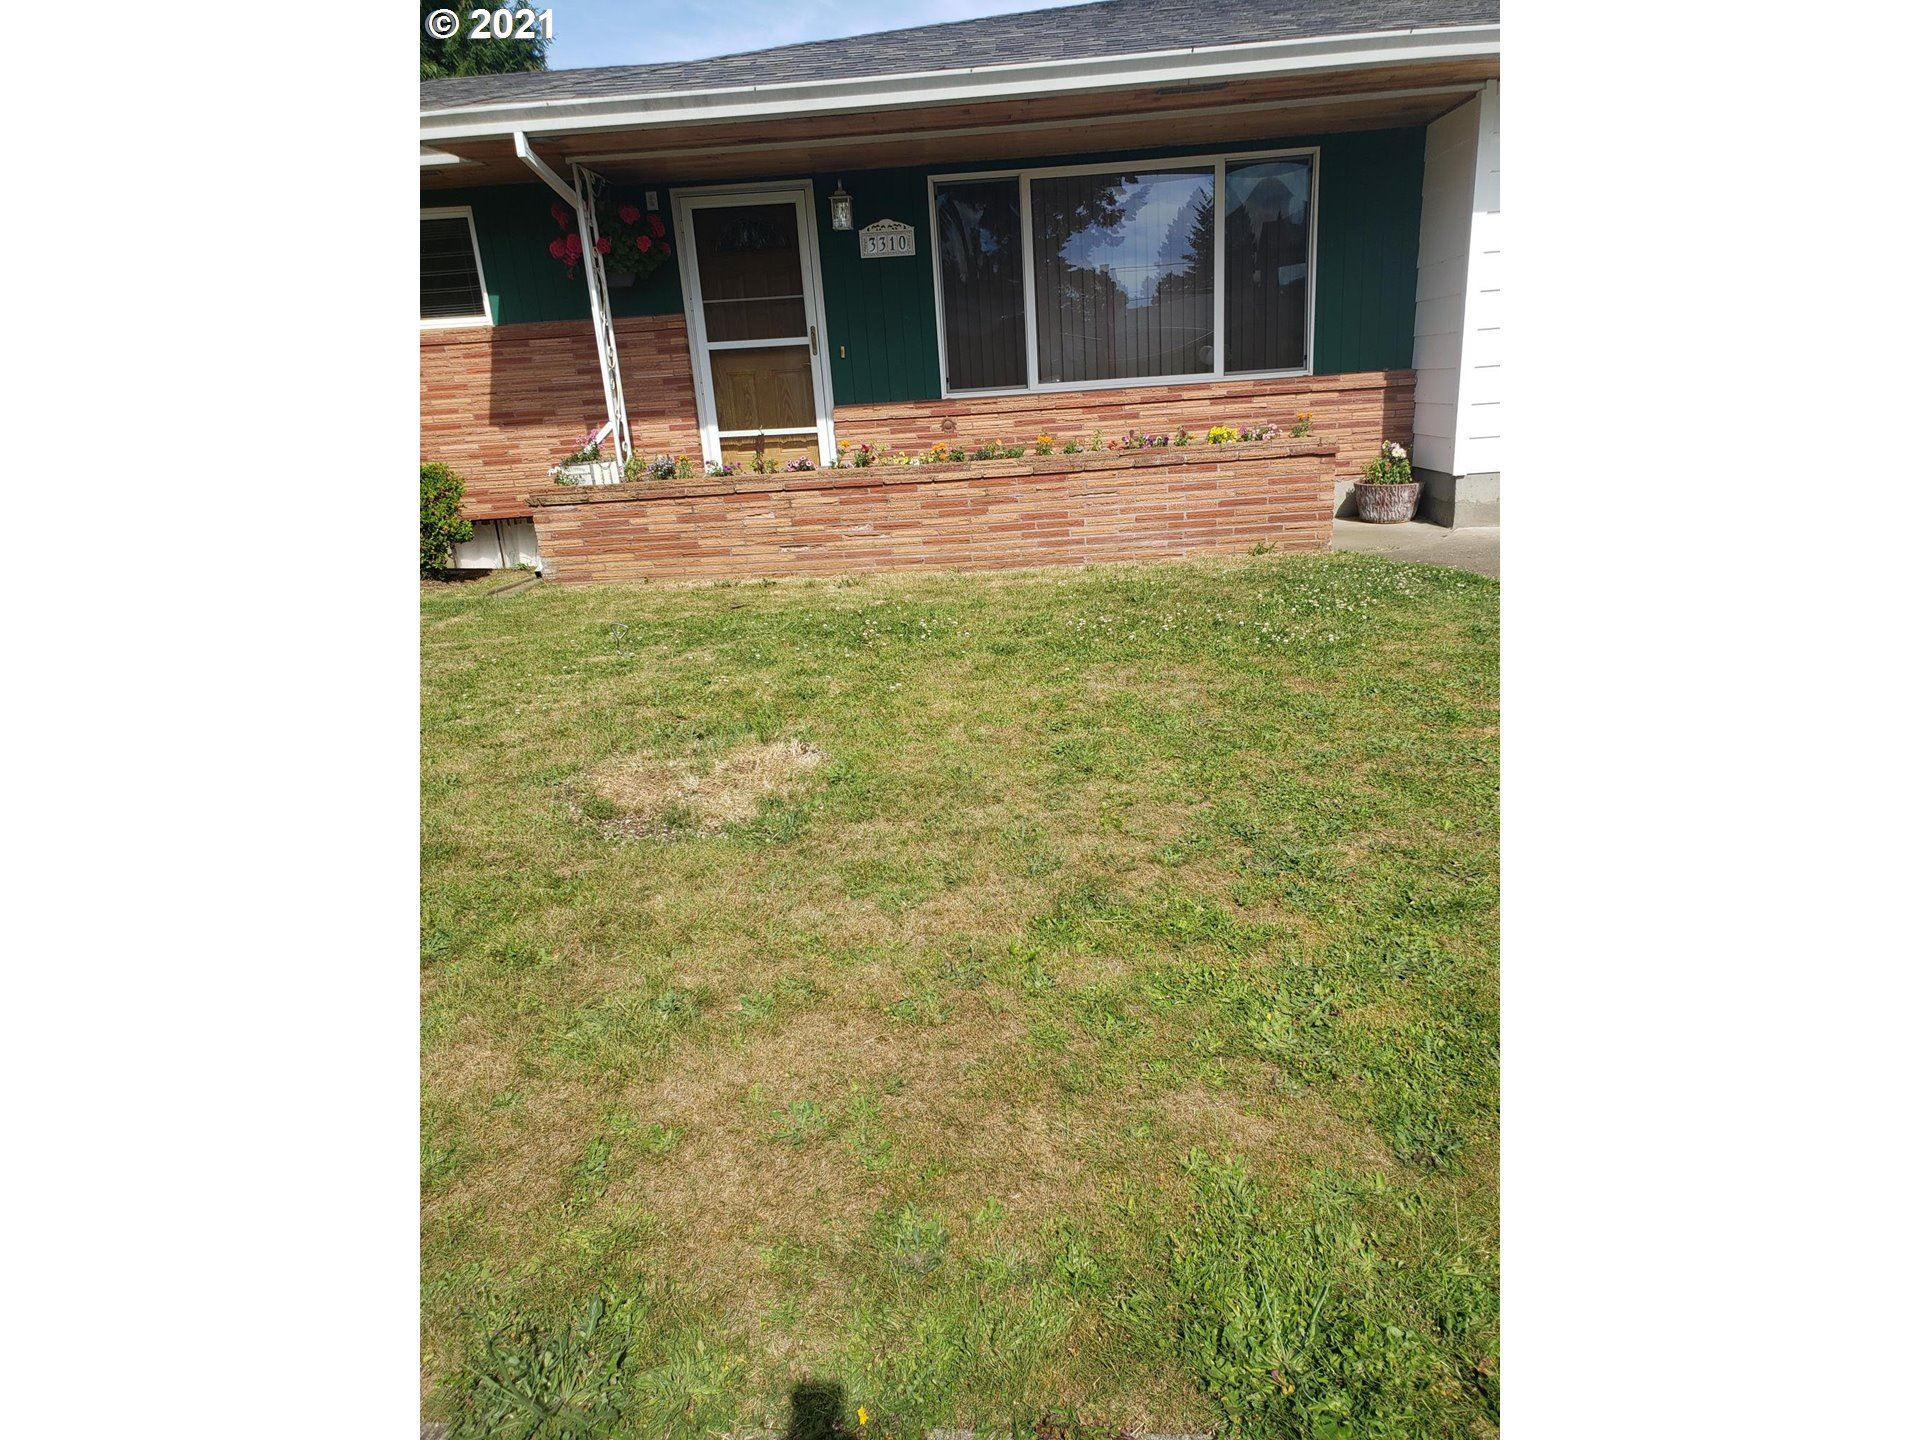 3310 SE 167TH AVE, Portland, OR 97236 - MLS#: 21508878